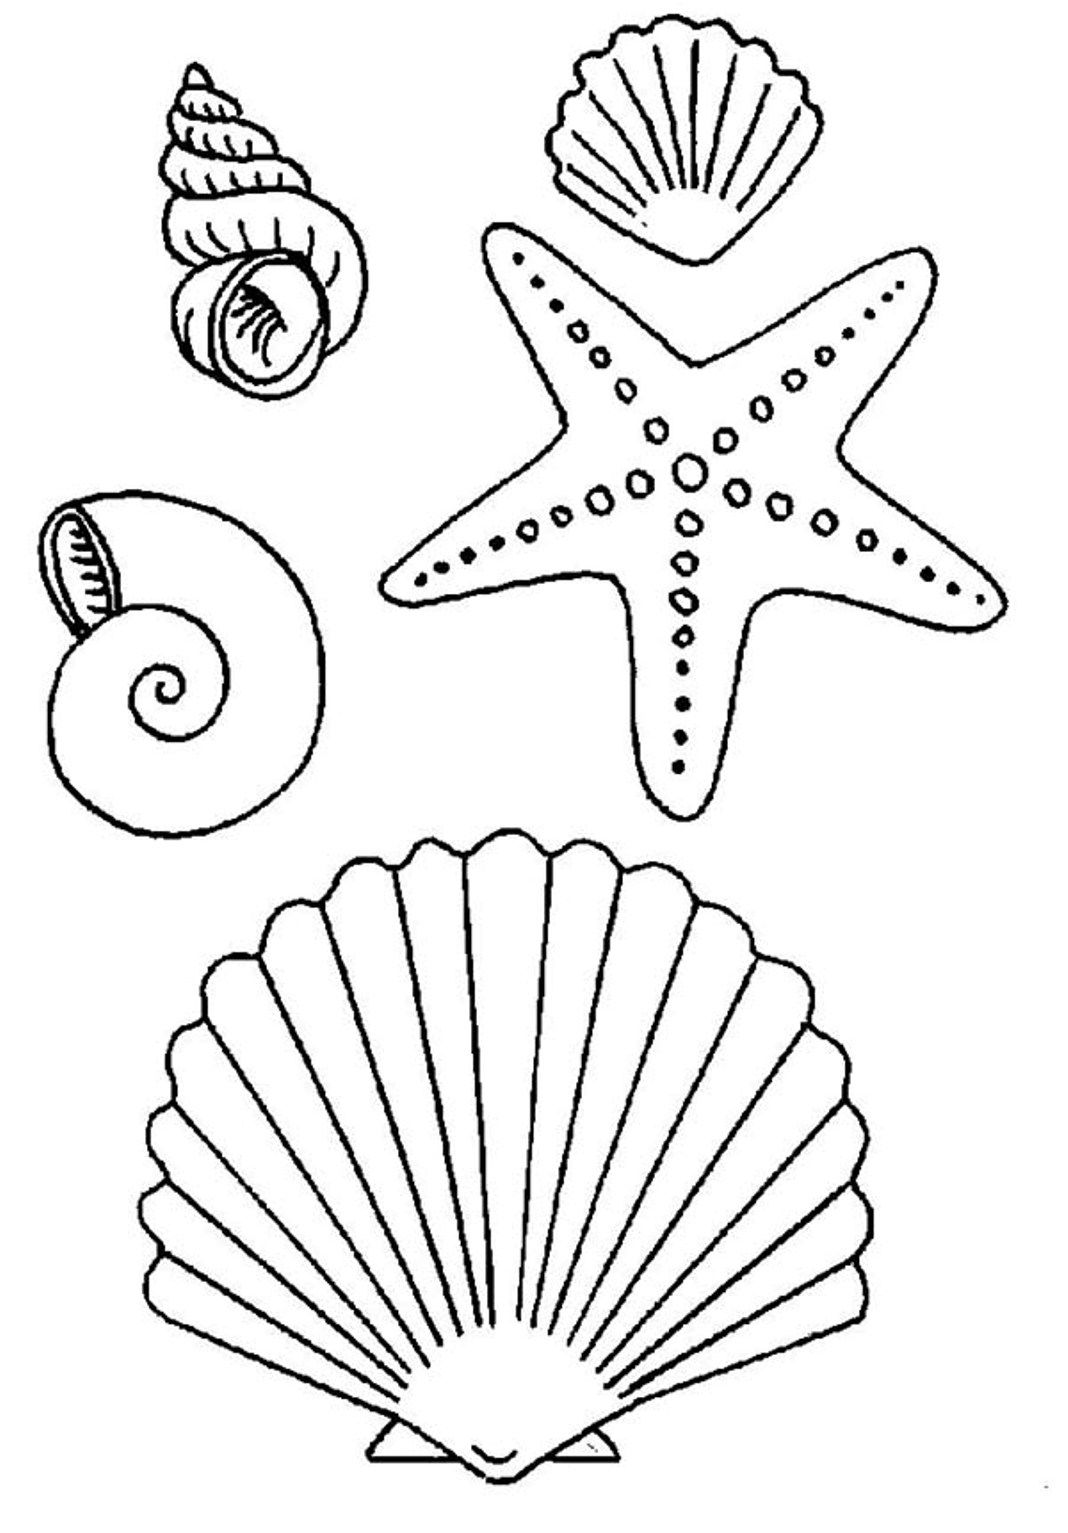 images for > simple seashell drawings  conchas de mar